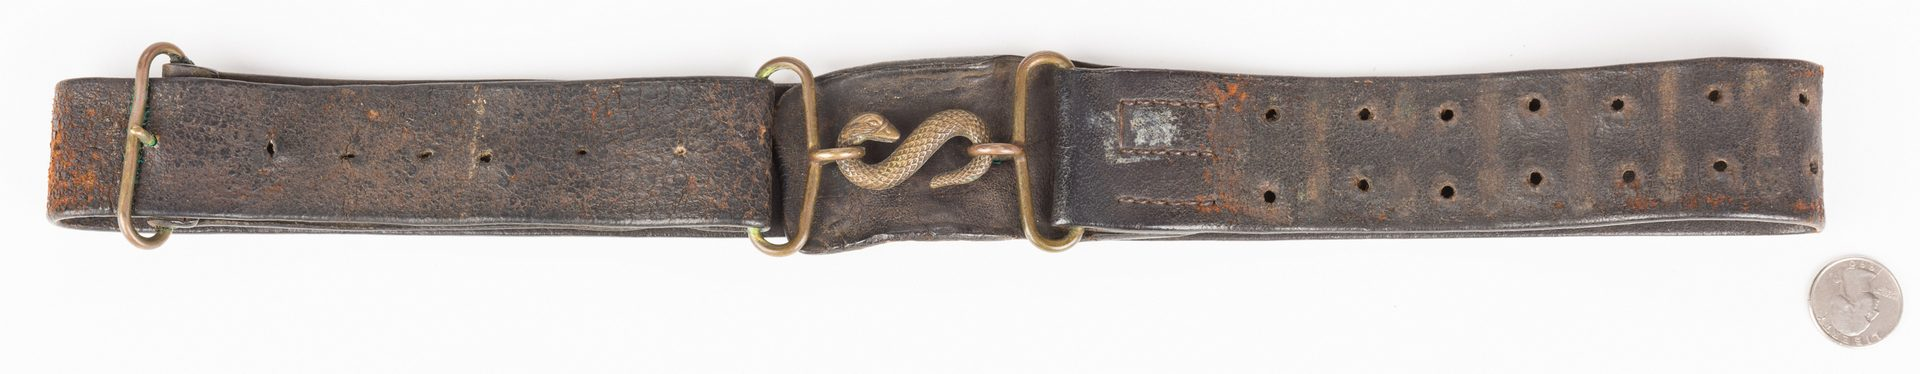 Lot 216: Civil War Waist Belt w/ Snake Buckle, British